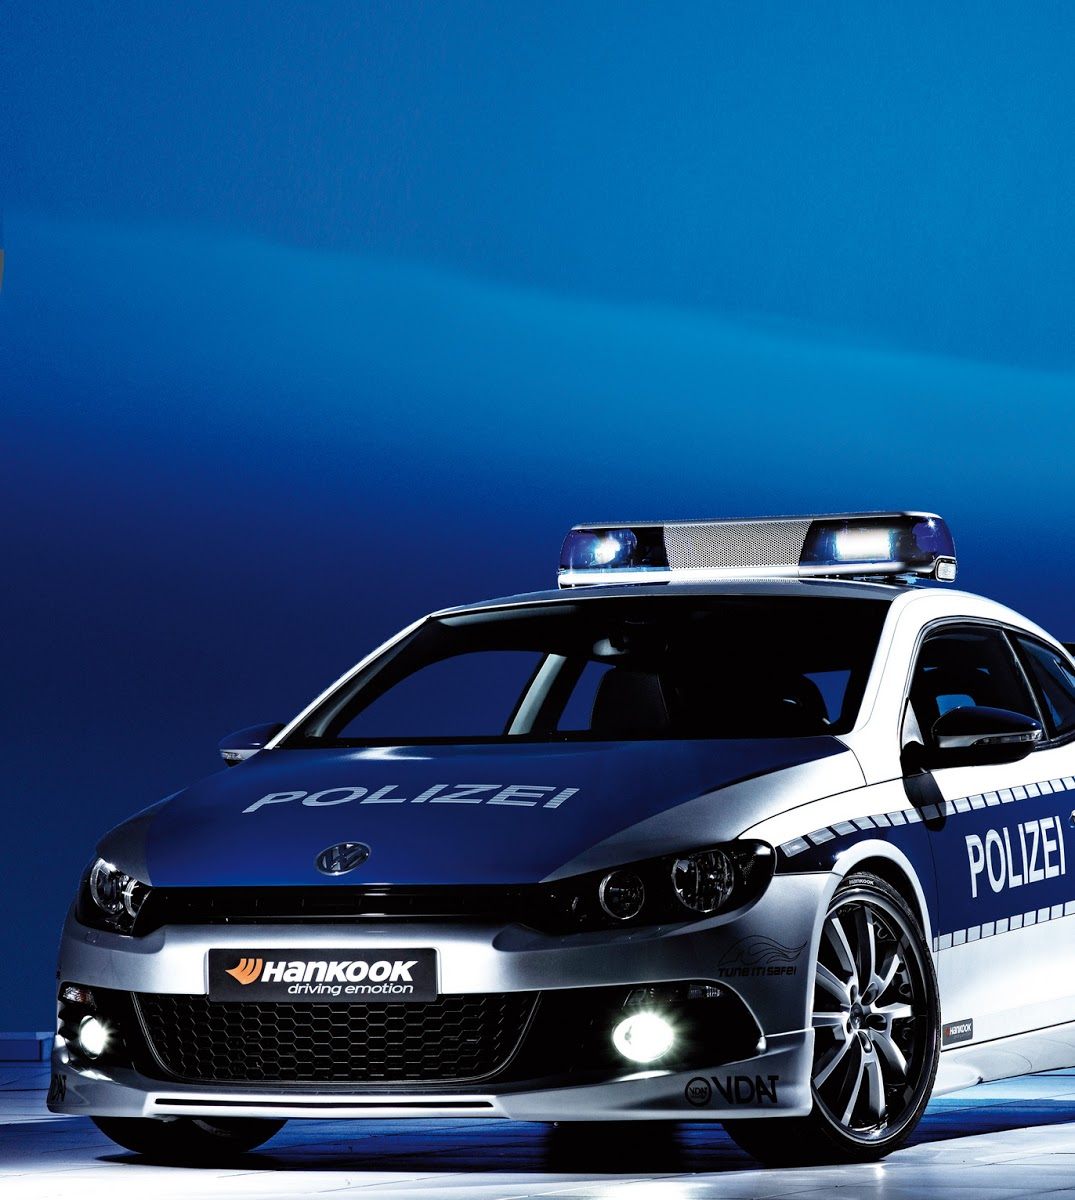 VW Scirocco Police Car Heads to 2009 Essen Motorshow ...